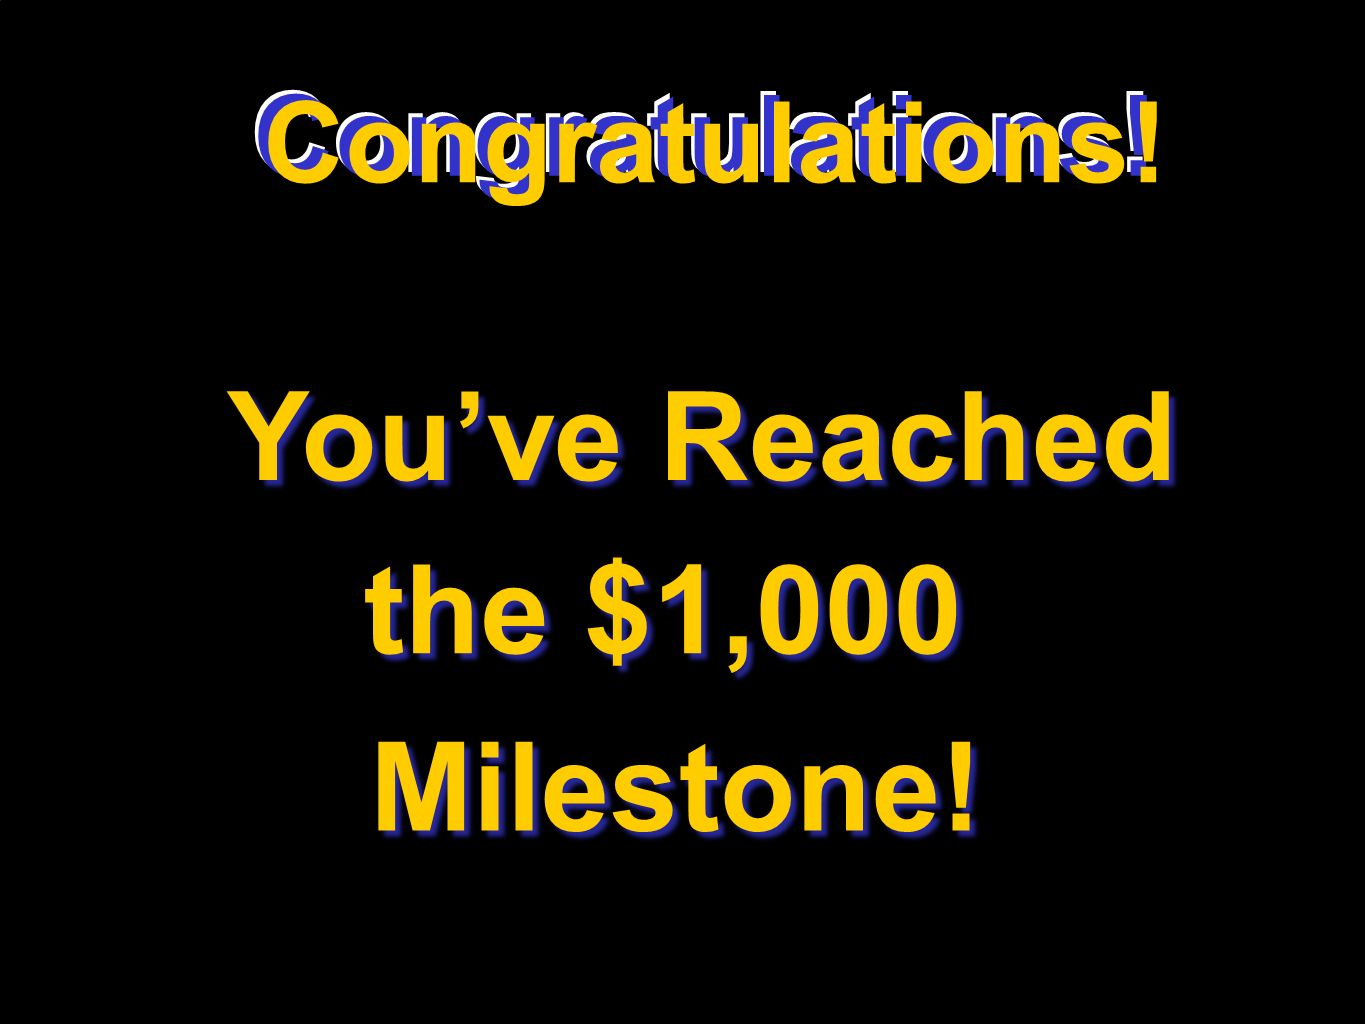 Congratulations! Youve Reached the $1,000 Milestone! Congratulations!